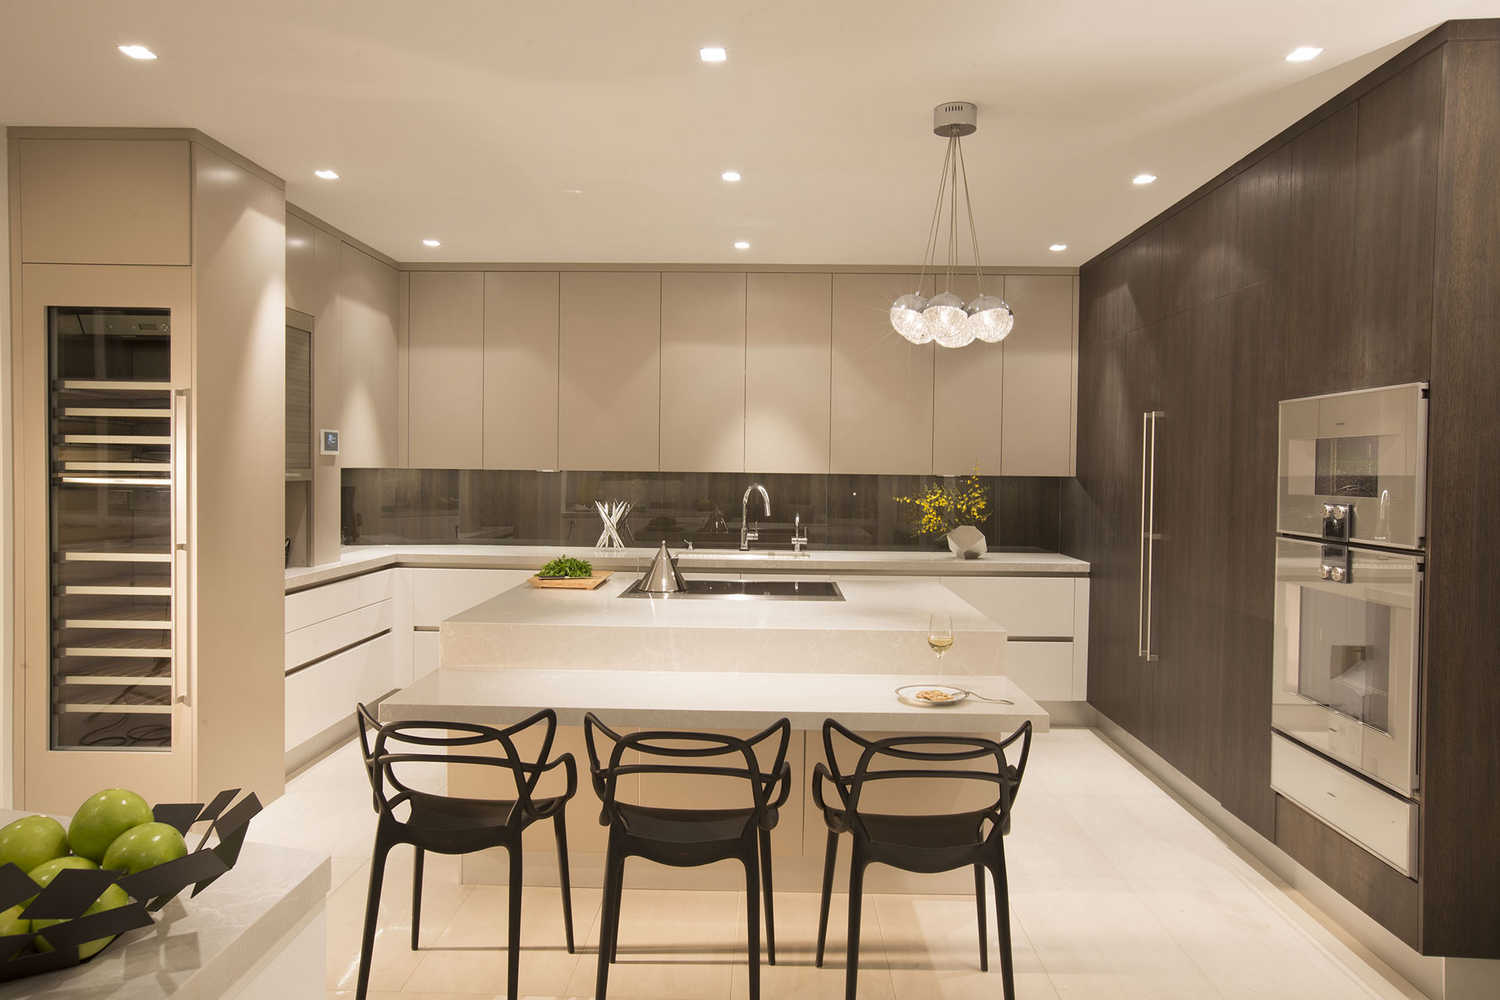 Pictures Of Small Kitchen Design Ideas From Hgtv: Residential Interior Design From DKOR Interiors